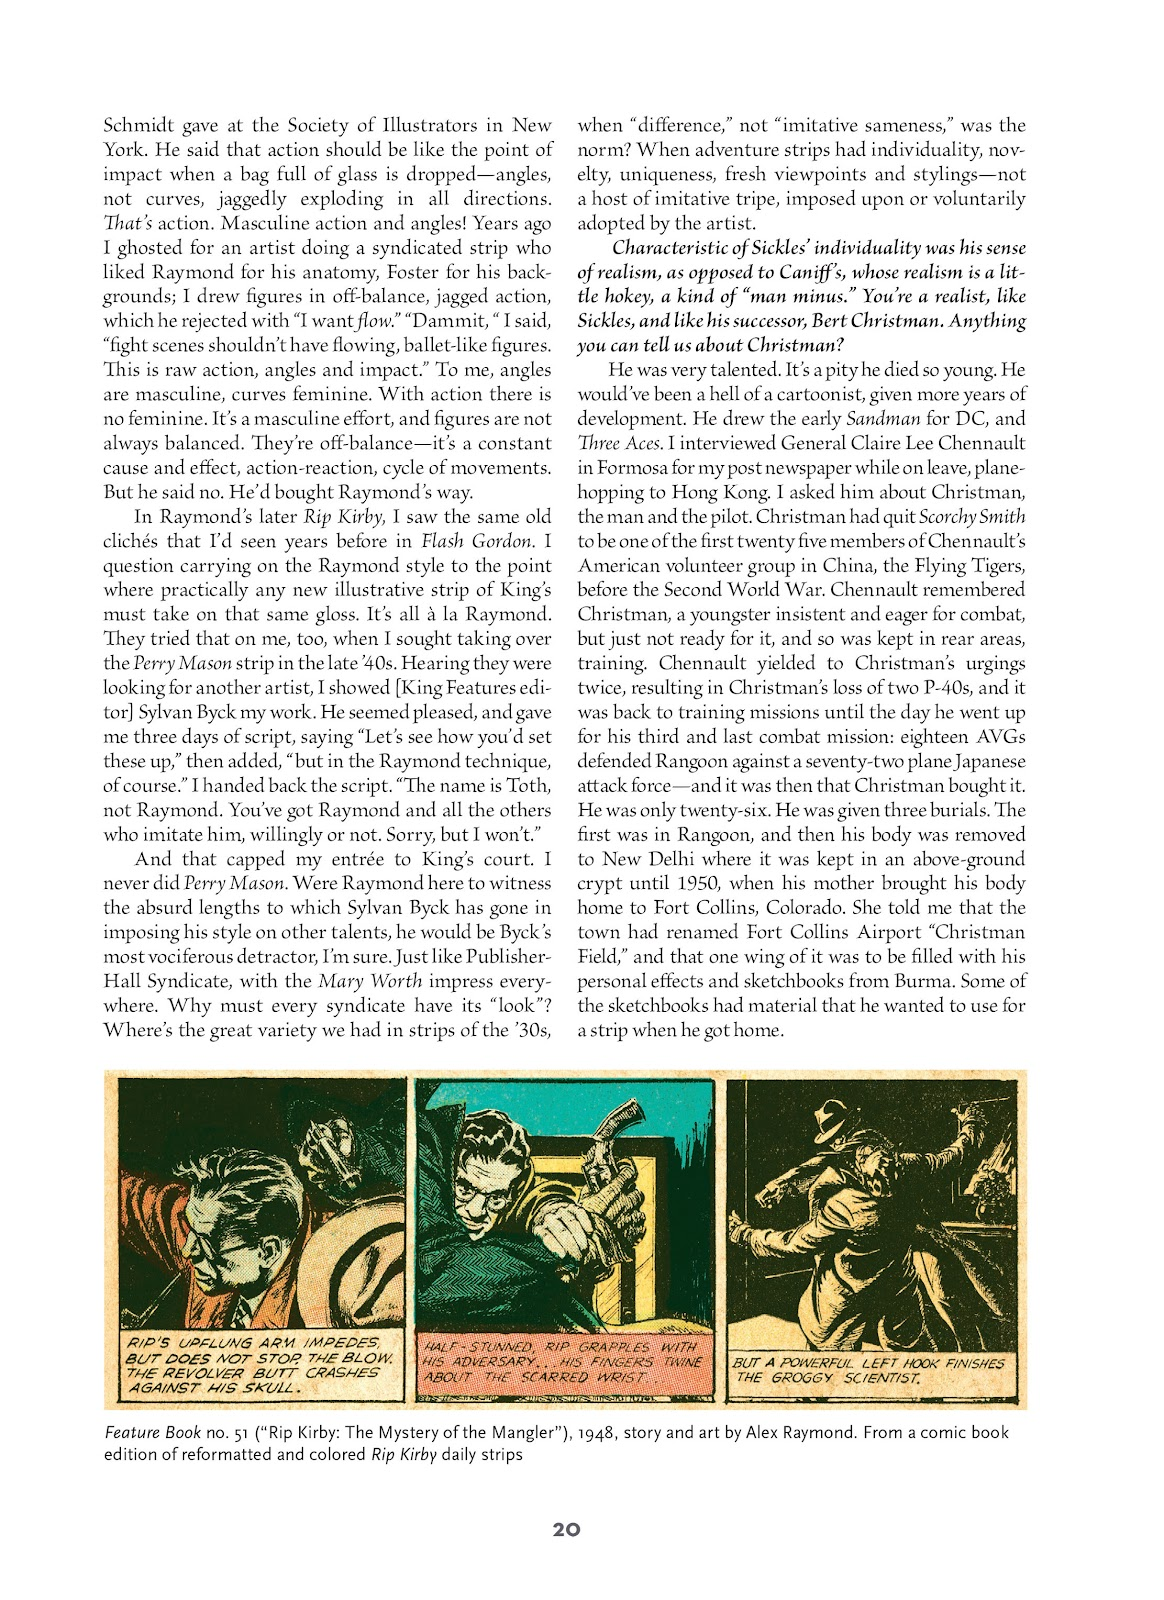 Read online Setting the Standard: Comics by Alex Toth 1952-1954 comic -  Issue # TPB (Part 1) - 19